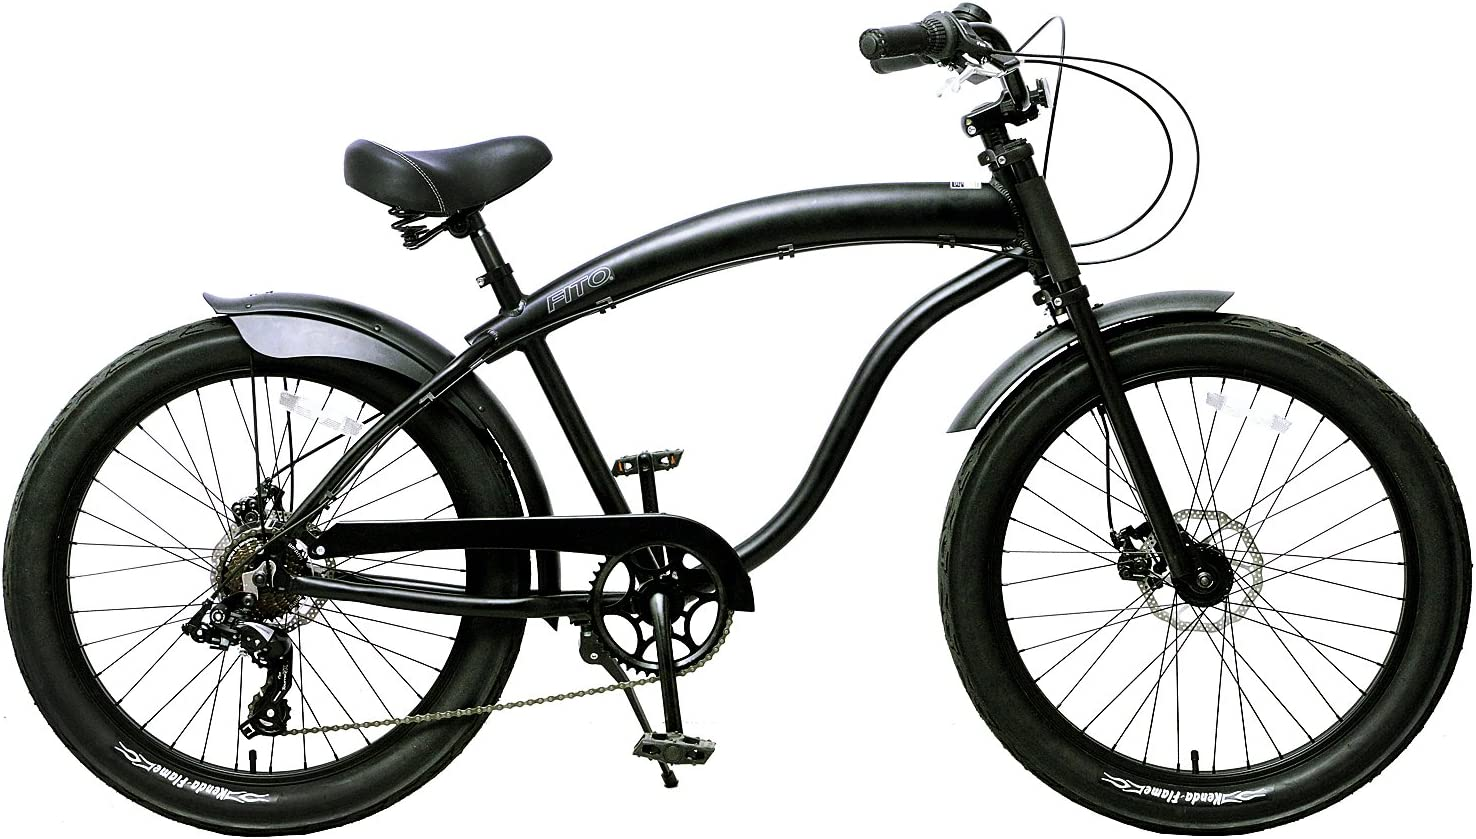 Fito Men s Modena GT 2.0 Aluminum Alloy 7 Speed Beach Cruiser Bike, Black, 18 One Size